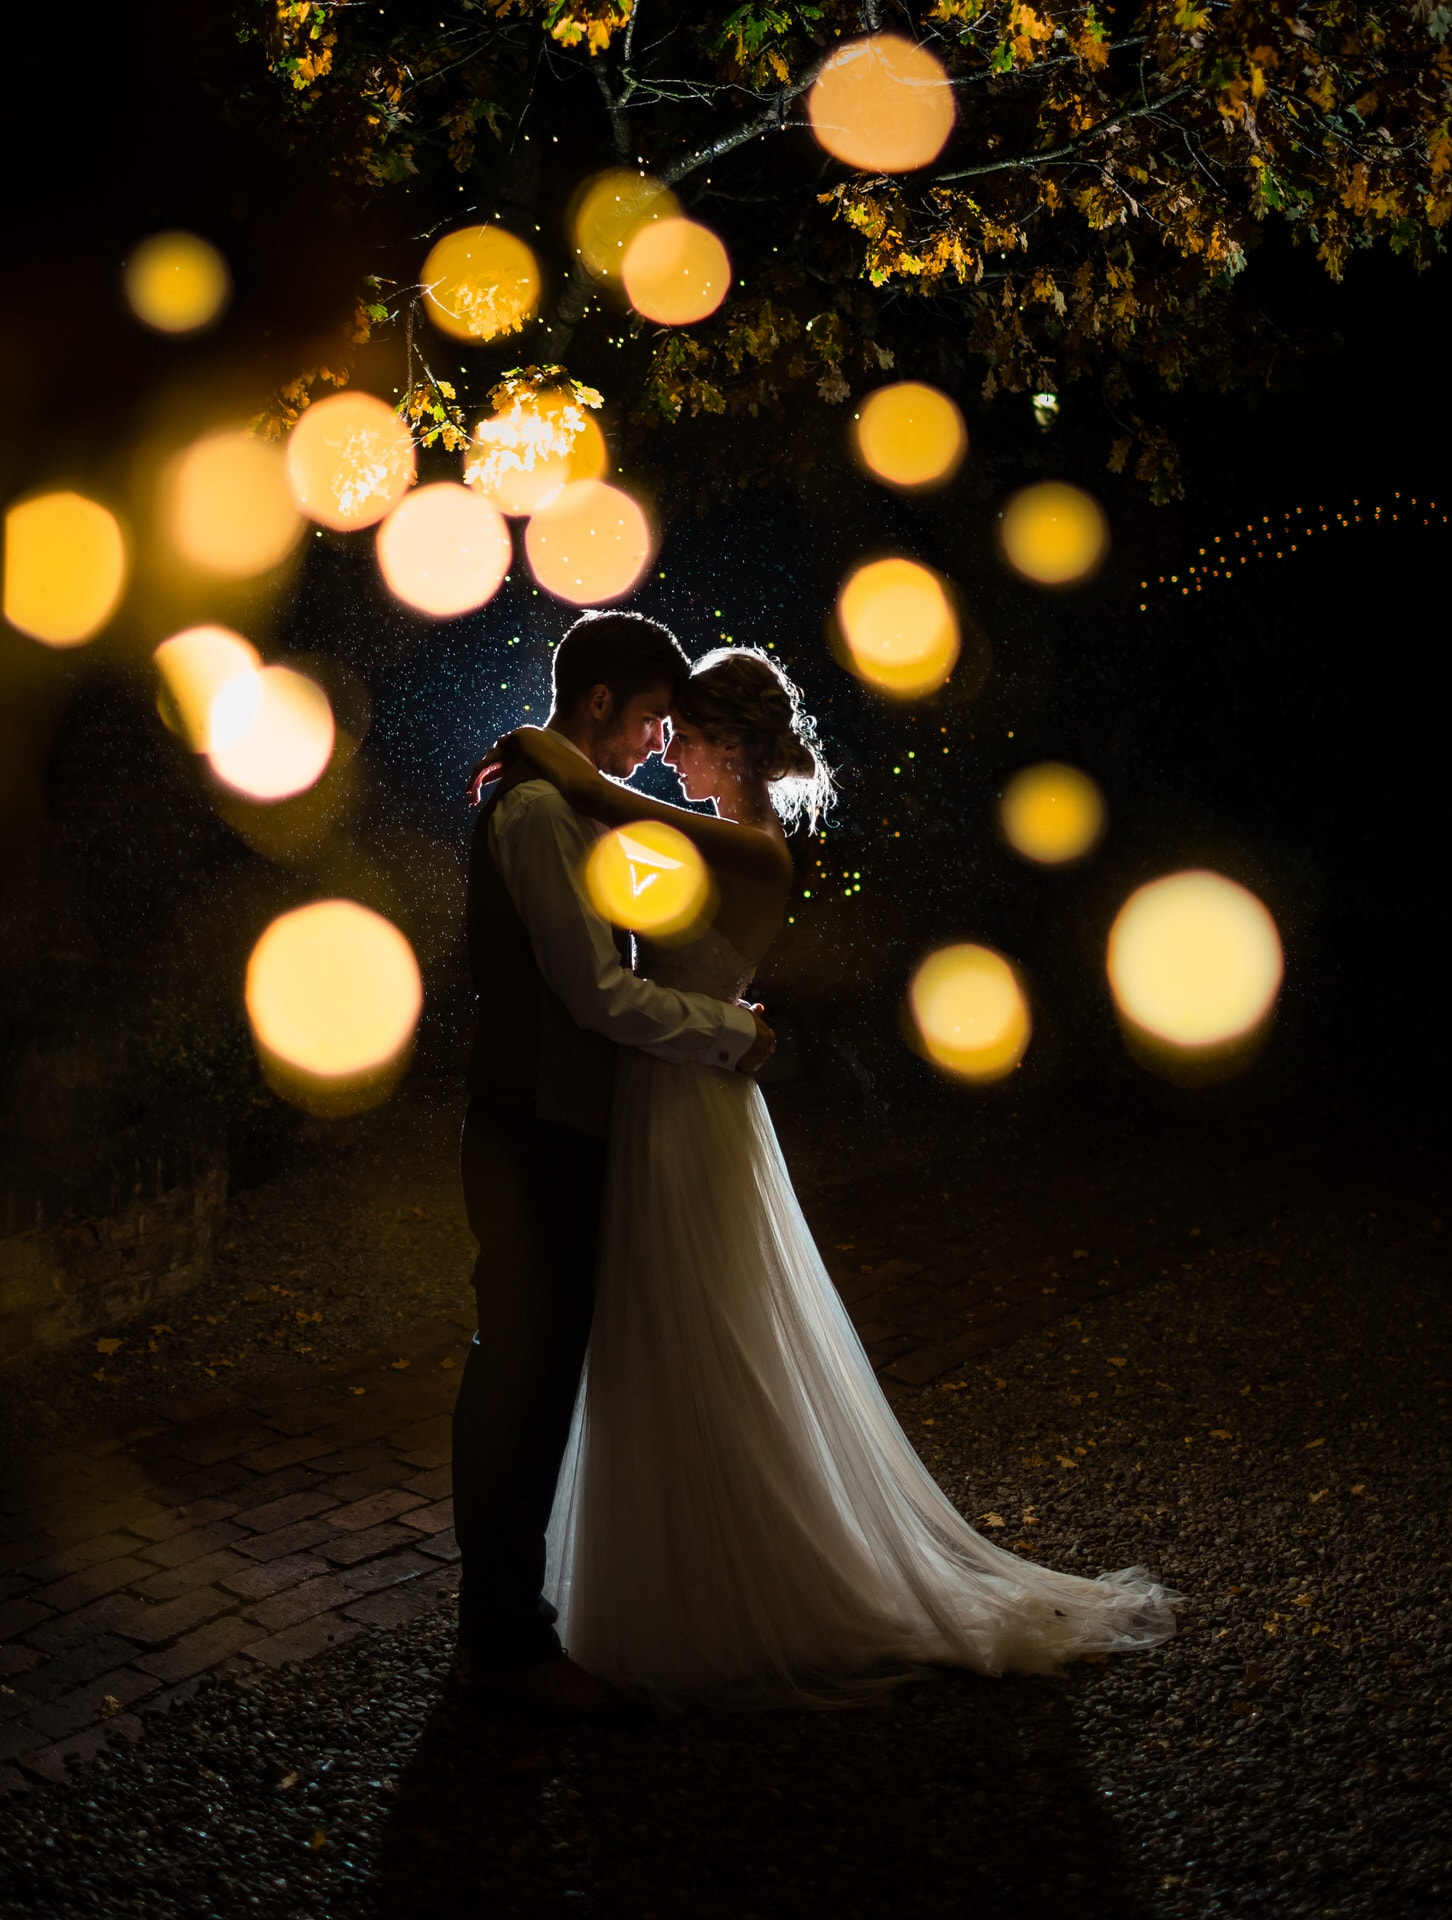 Bride and Groom portrait at night at Curradine Barns